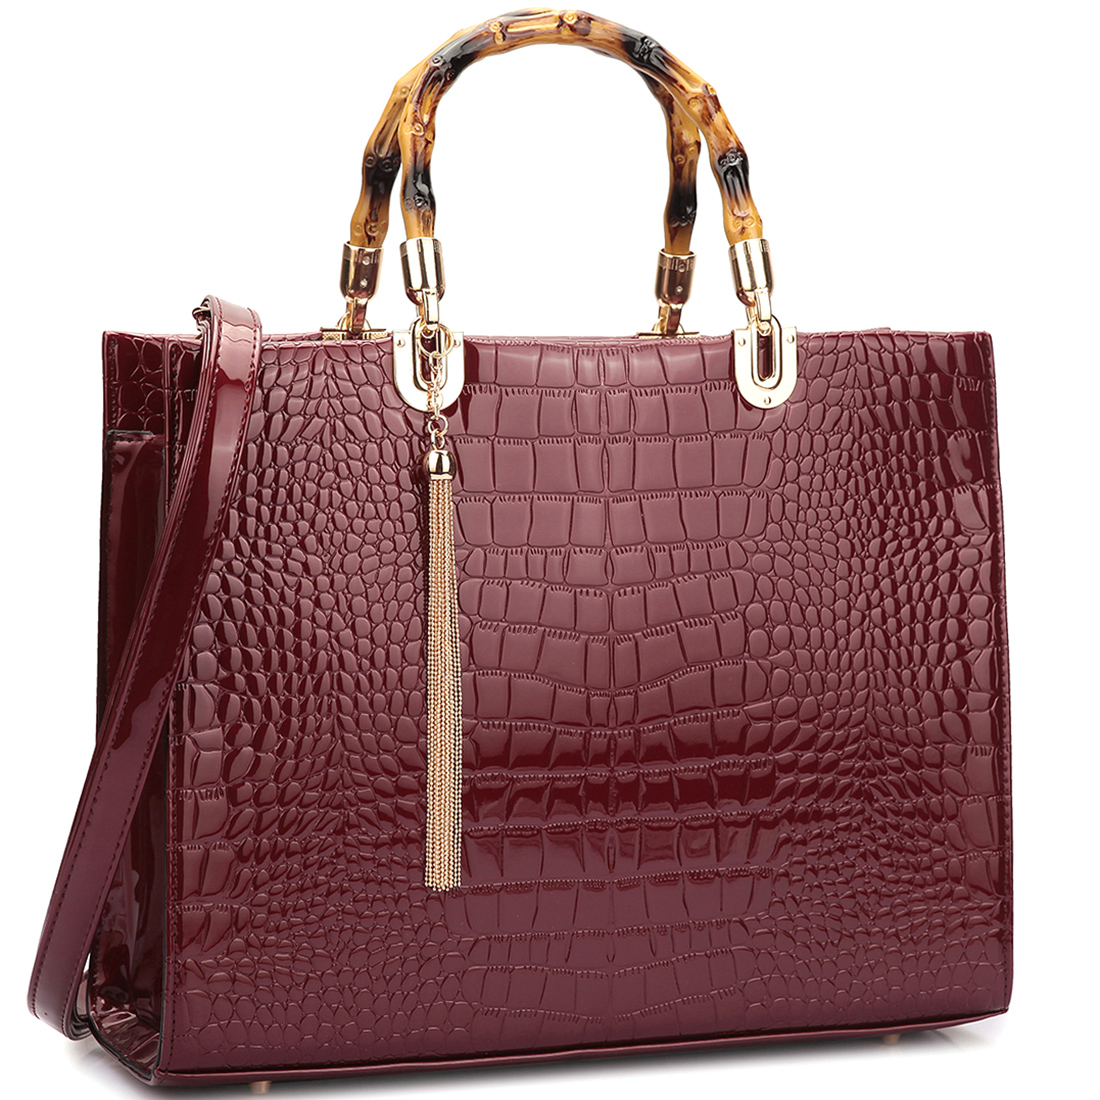 Wooden Handle Croco Material Satchel Bag